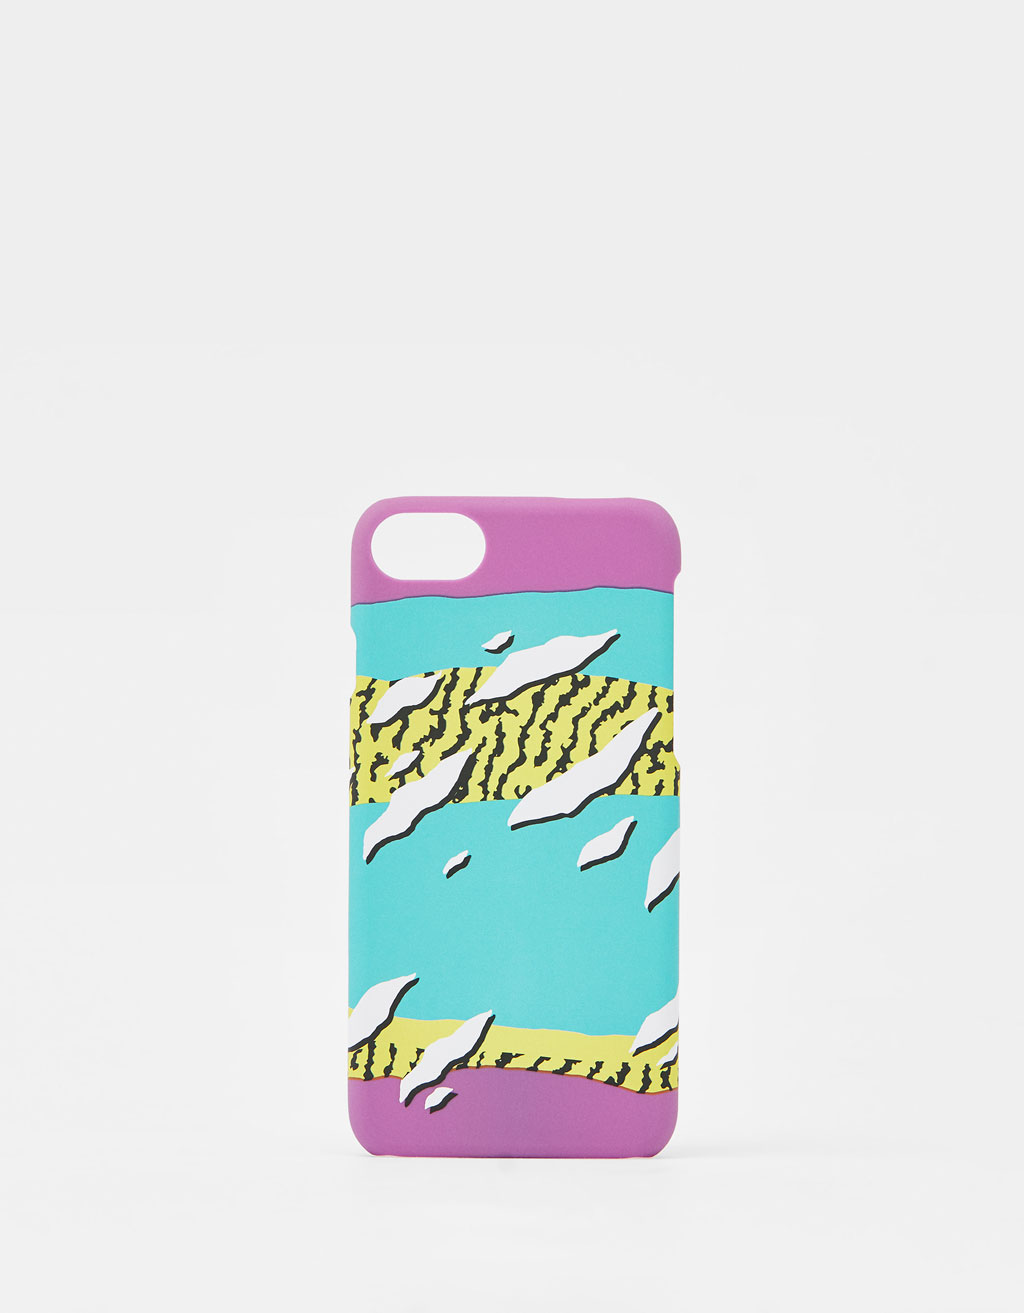 Carcasa Memphis iPhone 6 / 6S / 7 / 8